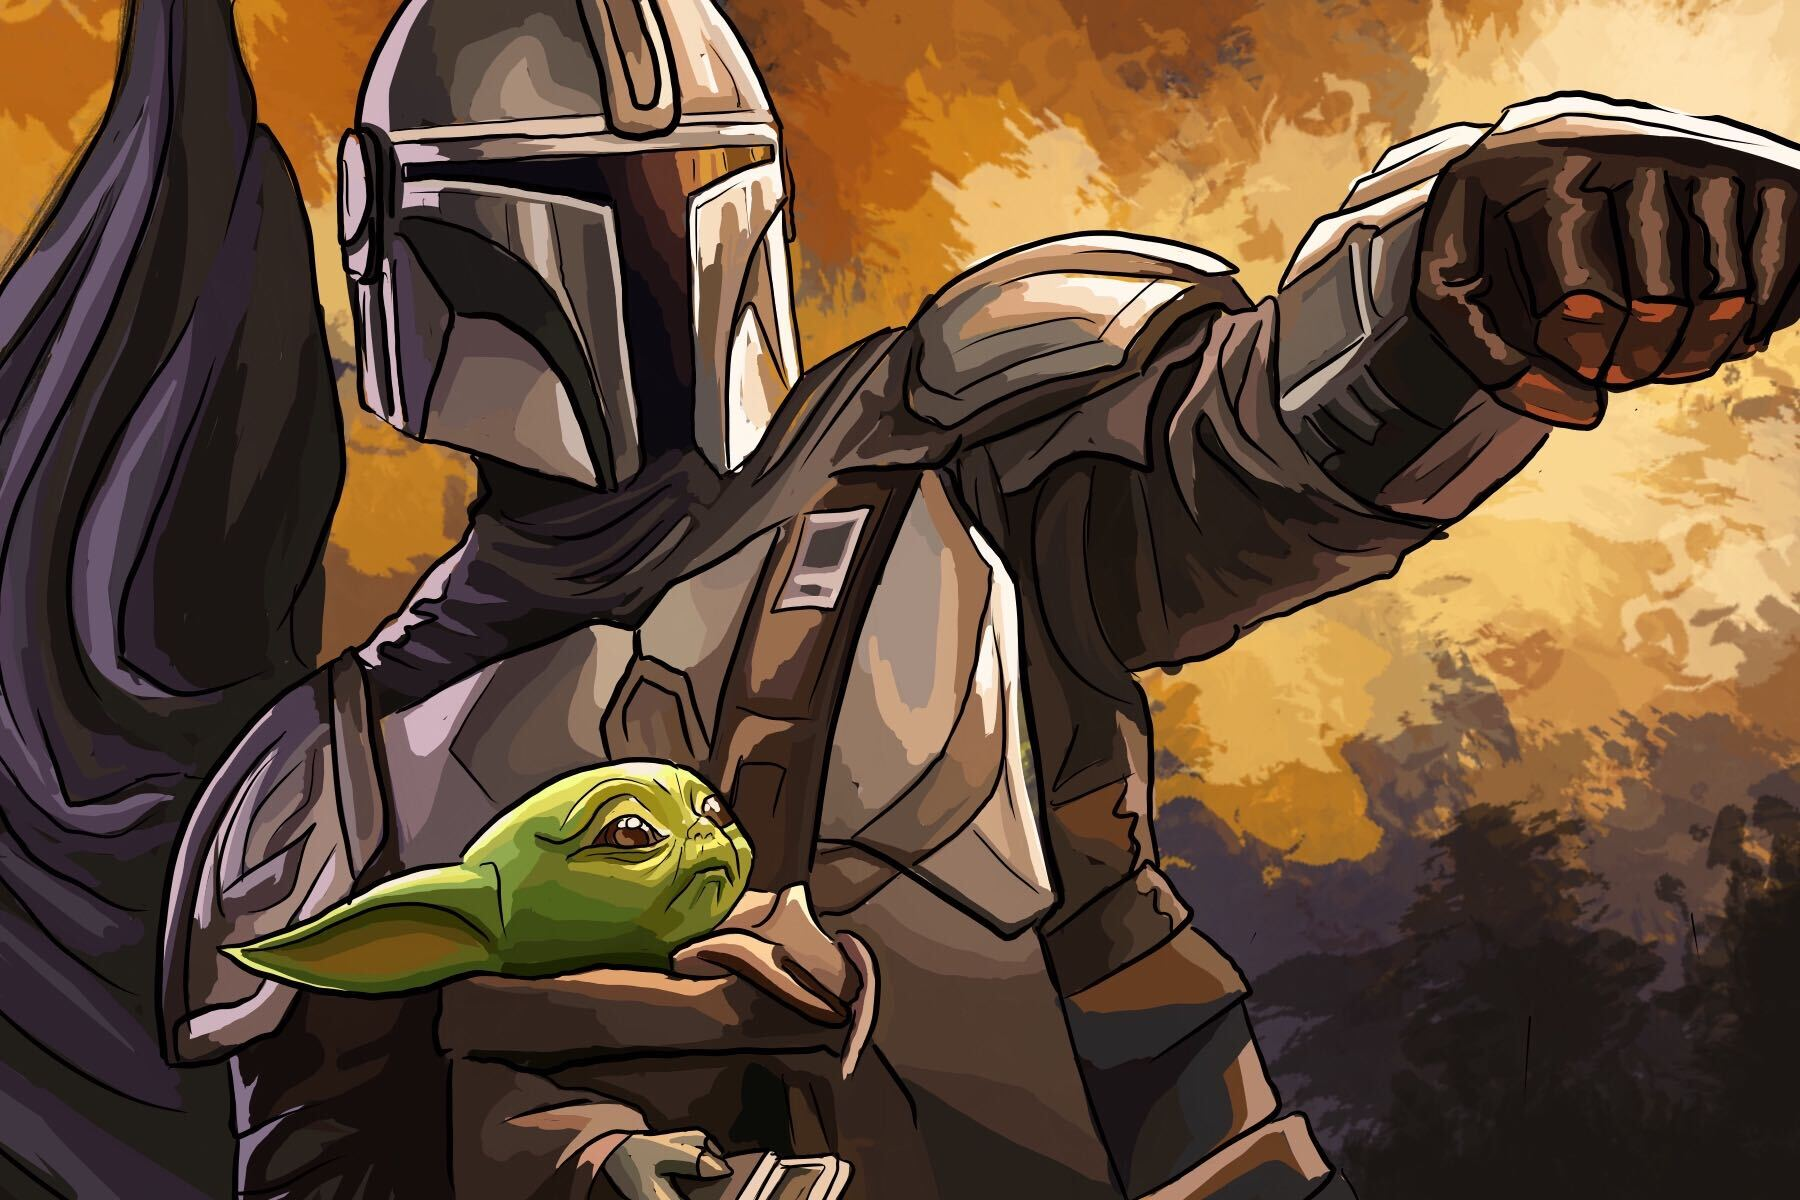 The Mandalorian Season 2 Might Surprise Animated Star Wars Fans